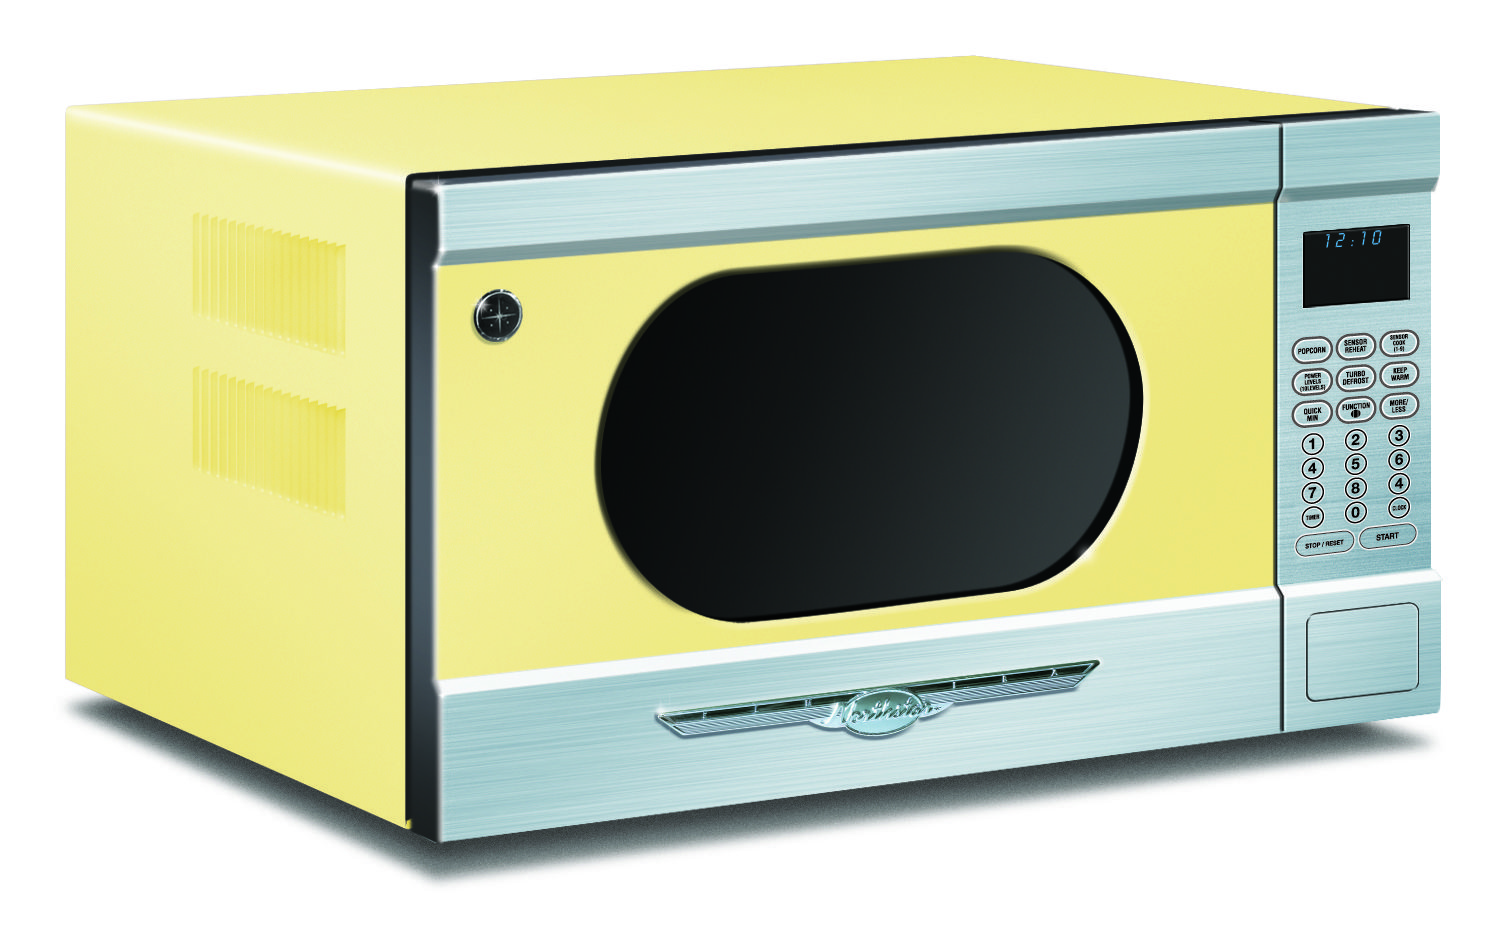 Retro Look Microwave Bestmicrowave